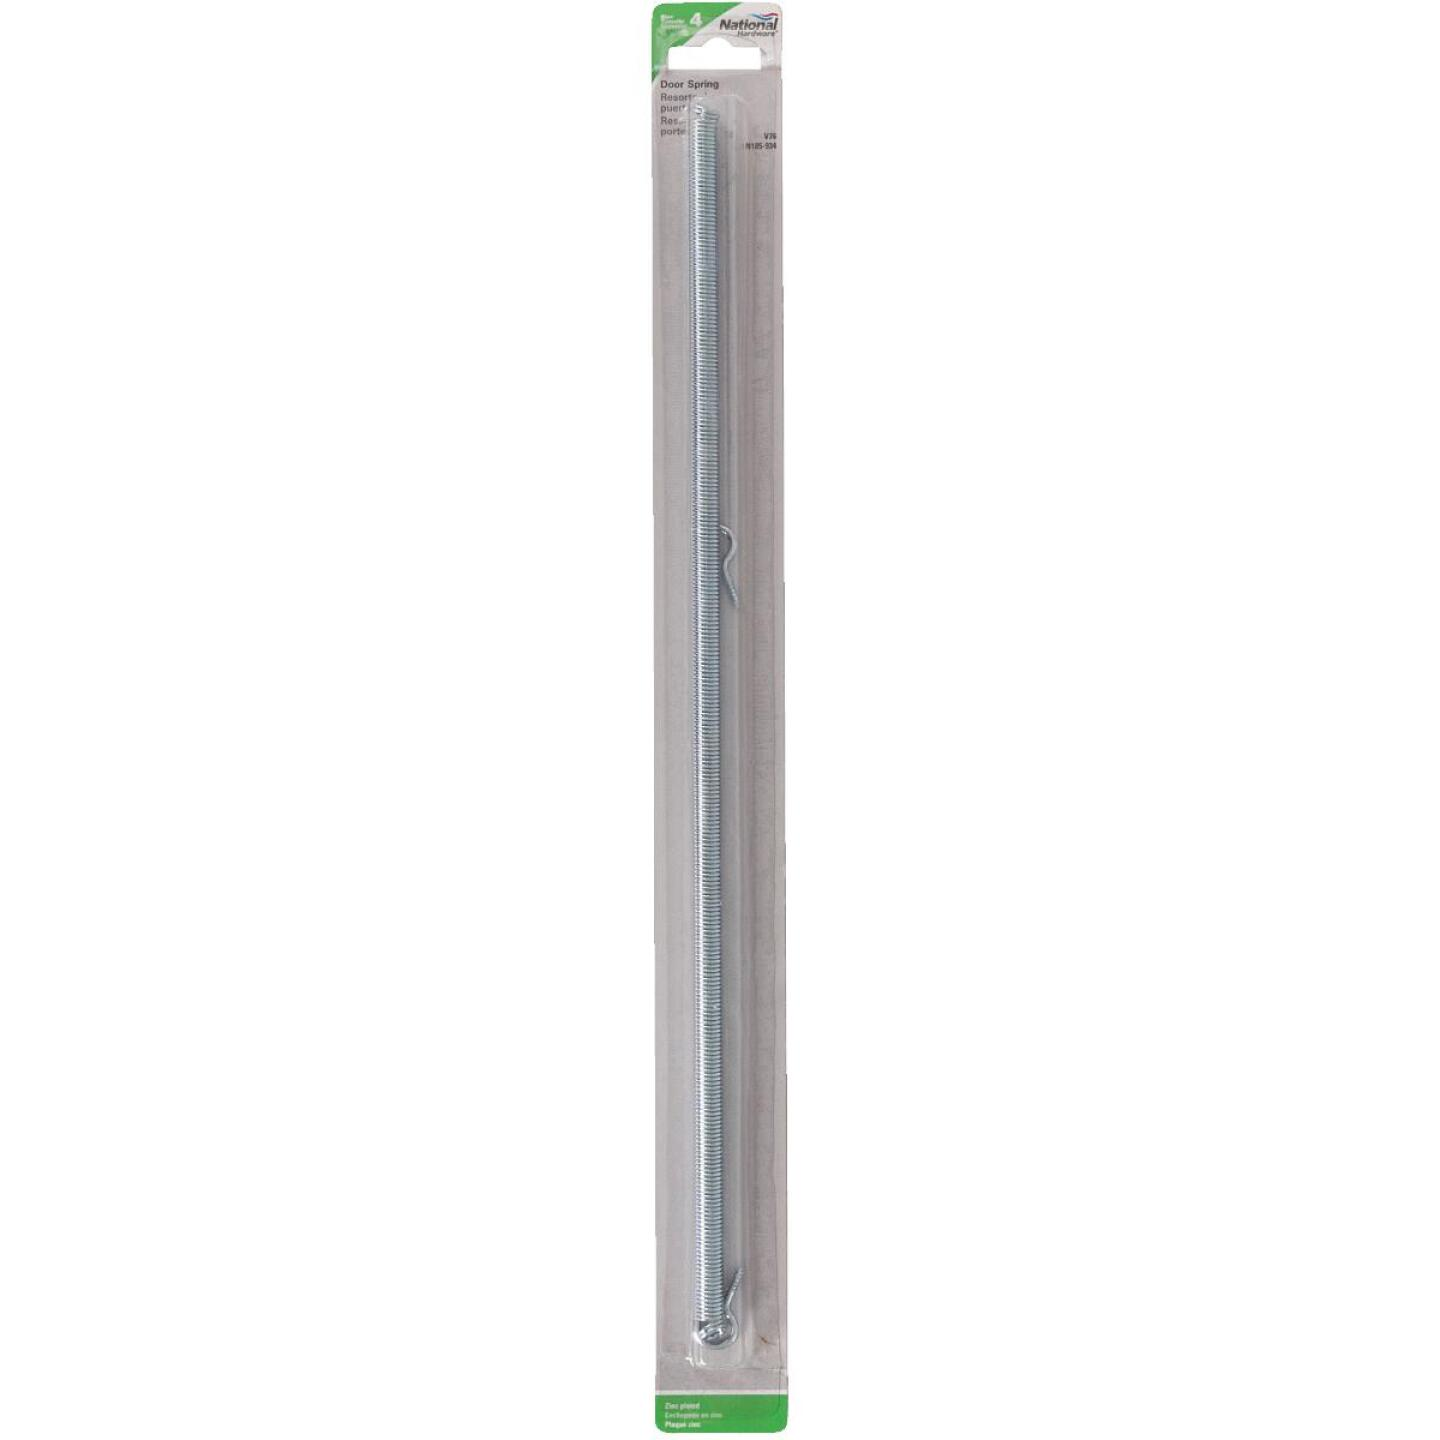 National 16 In. x 3/8 In. Gate And Door Spring Image 2